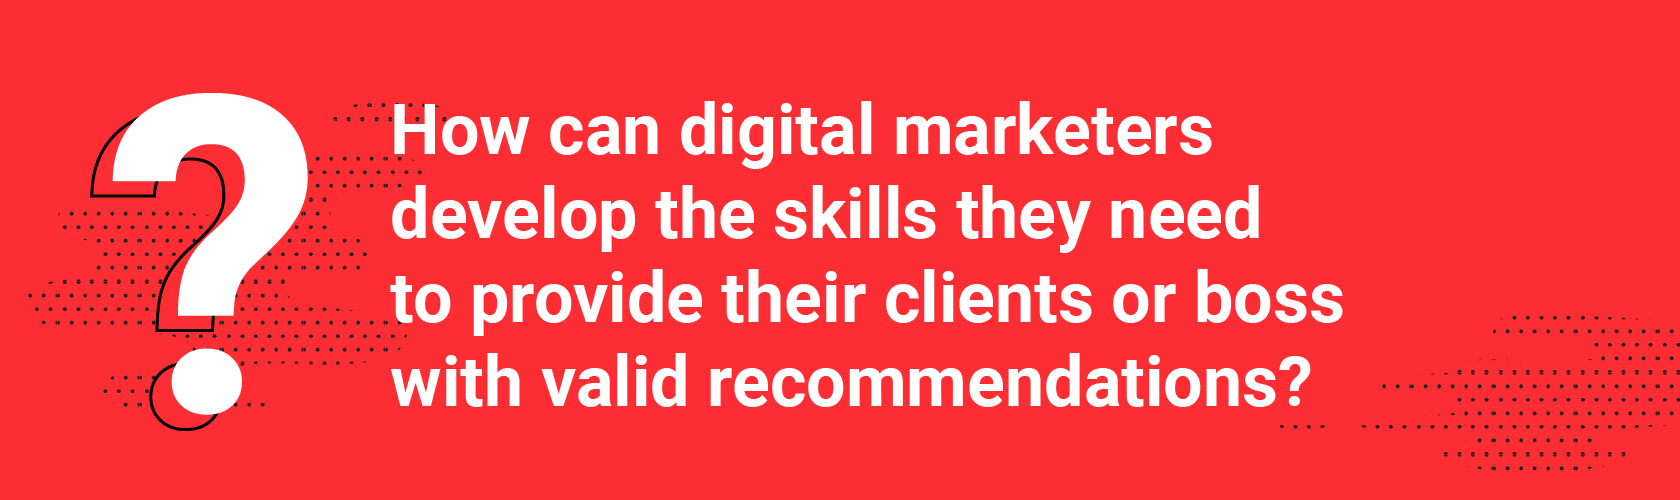 How can digital marketers develop the skills they need to provide their clients or boss with valid recommendations?